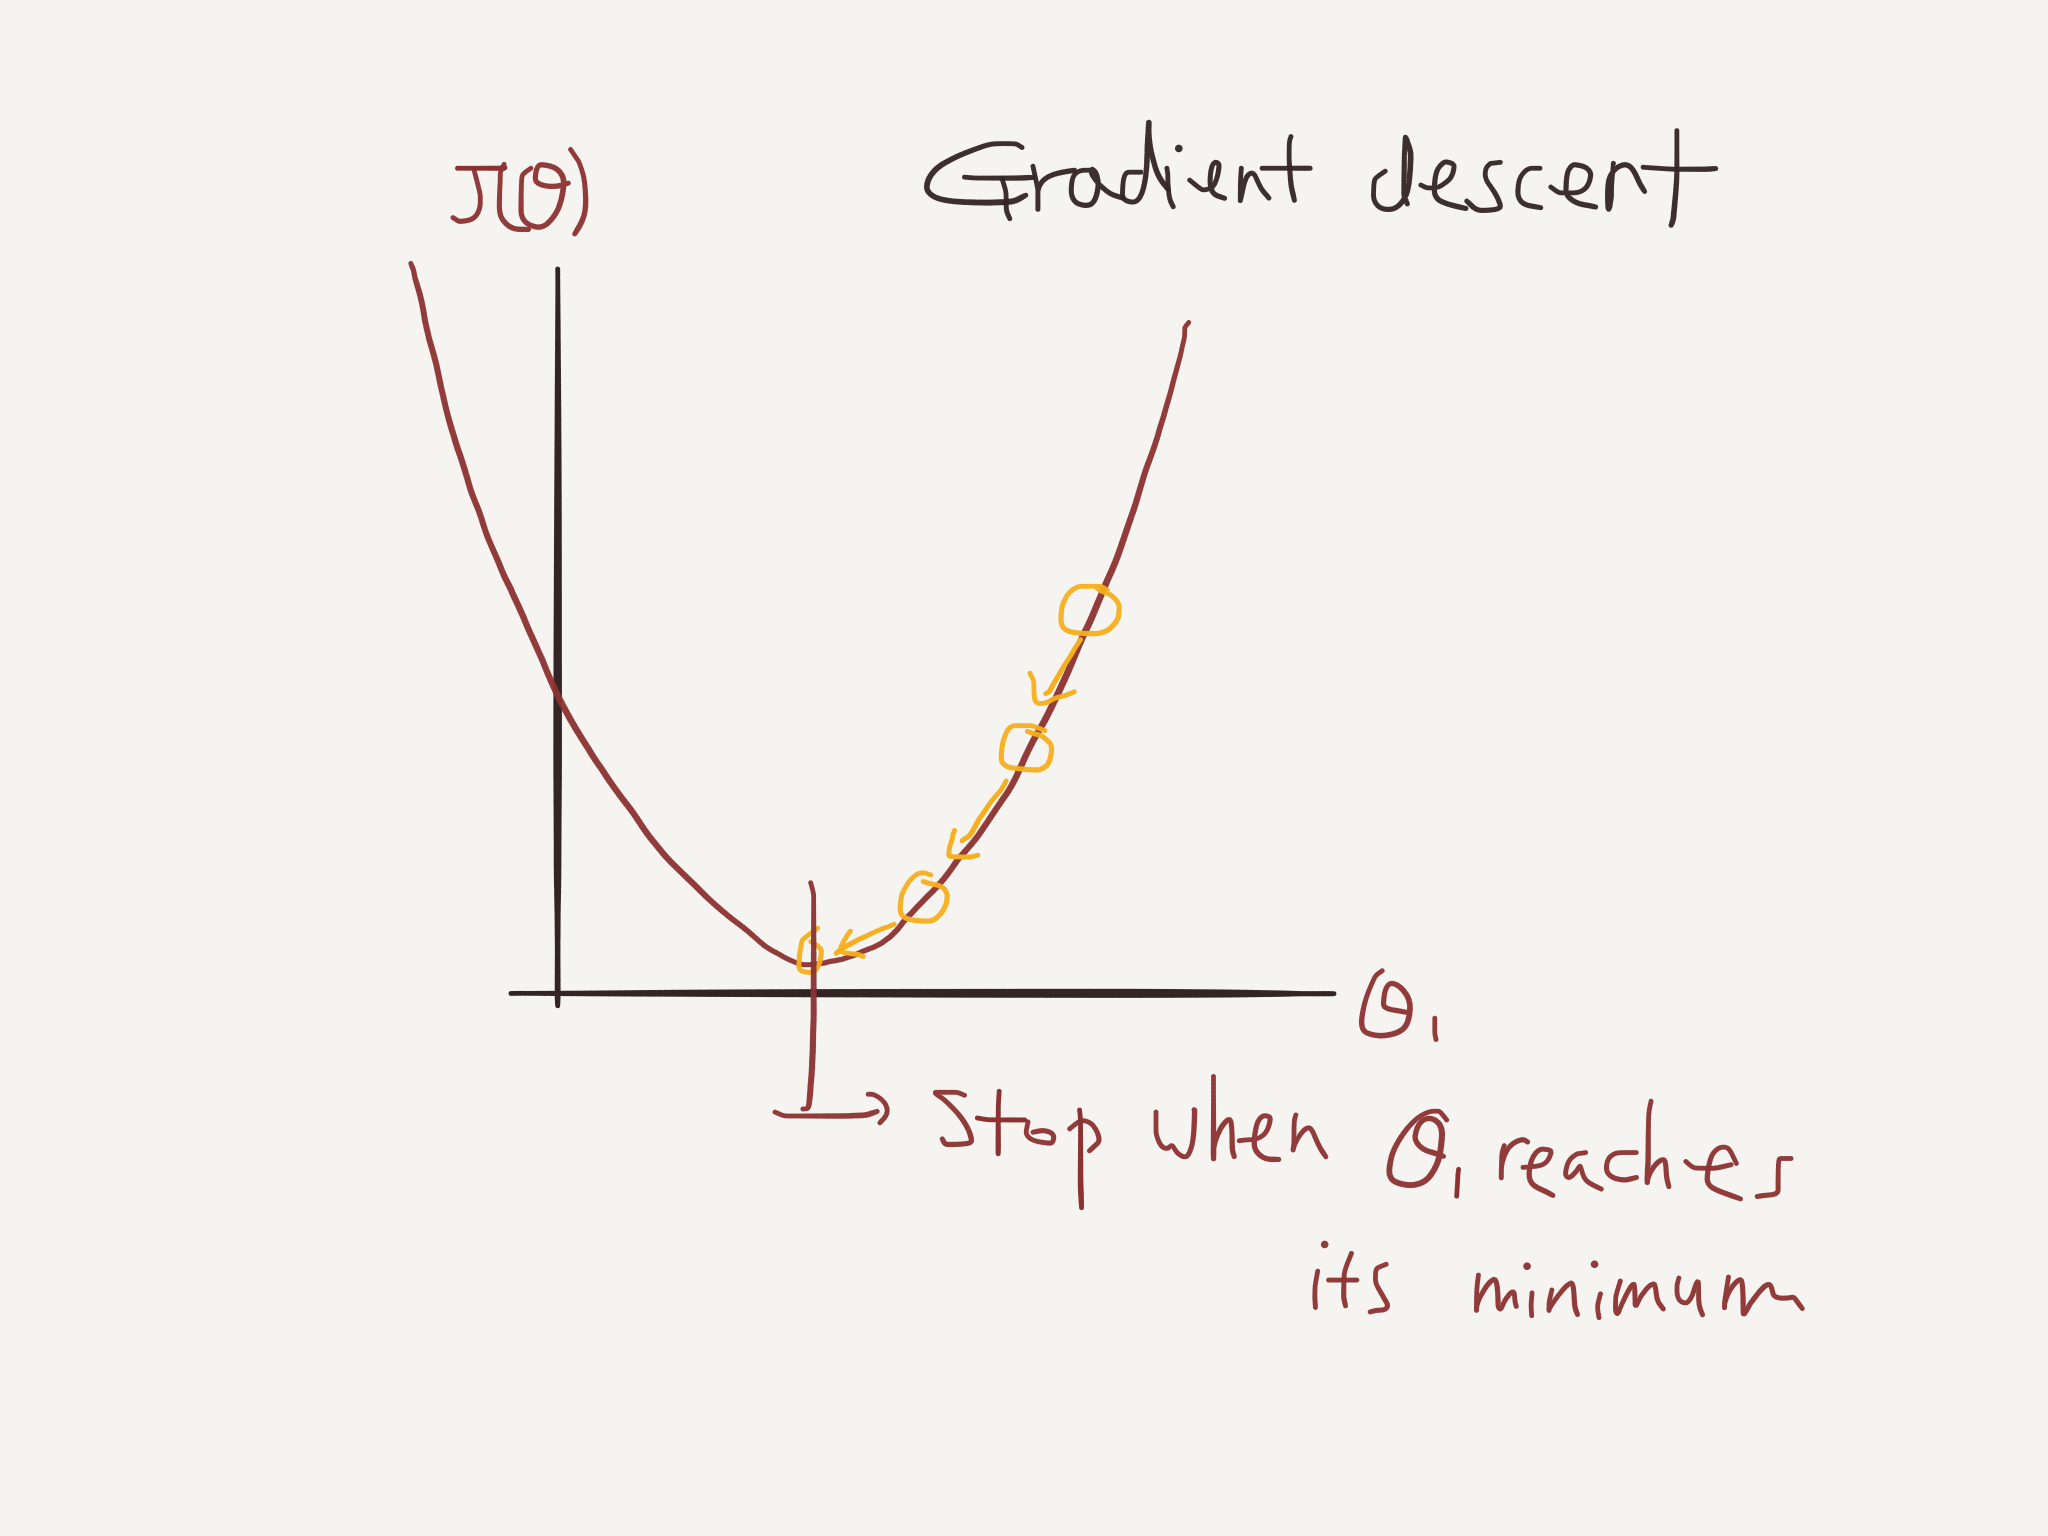 J(theta) 곡선 & gradient descent